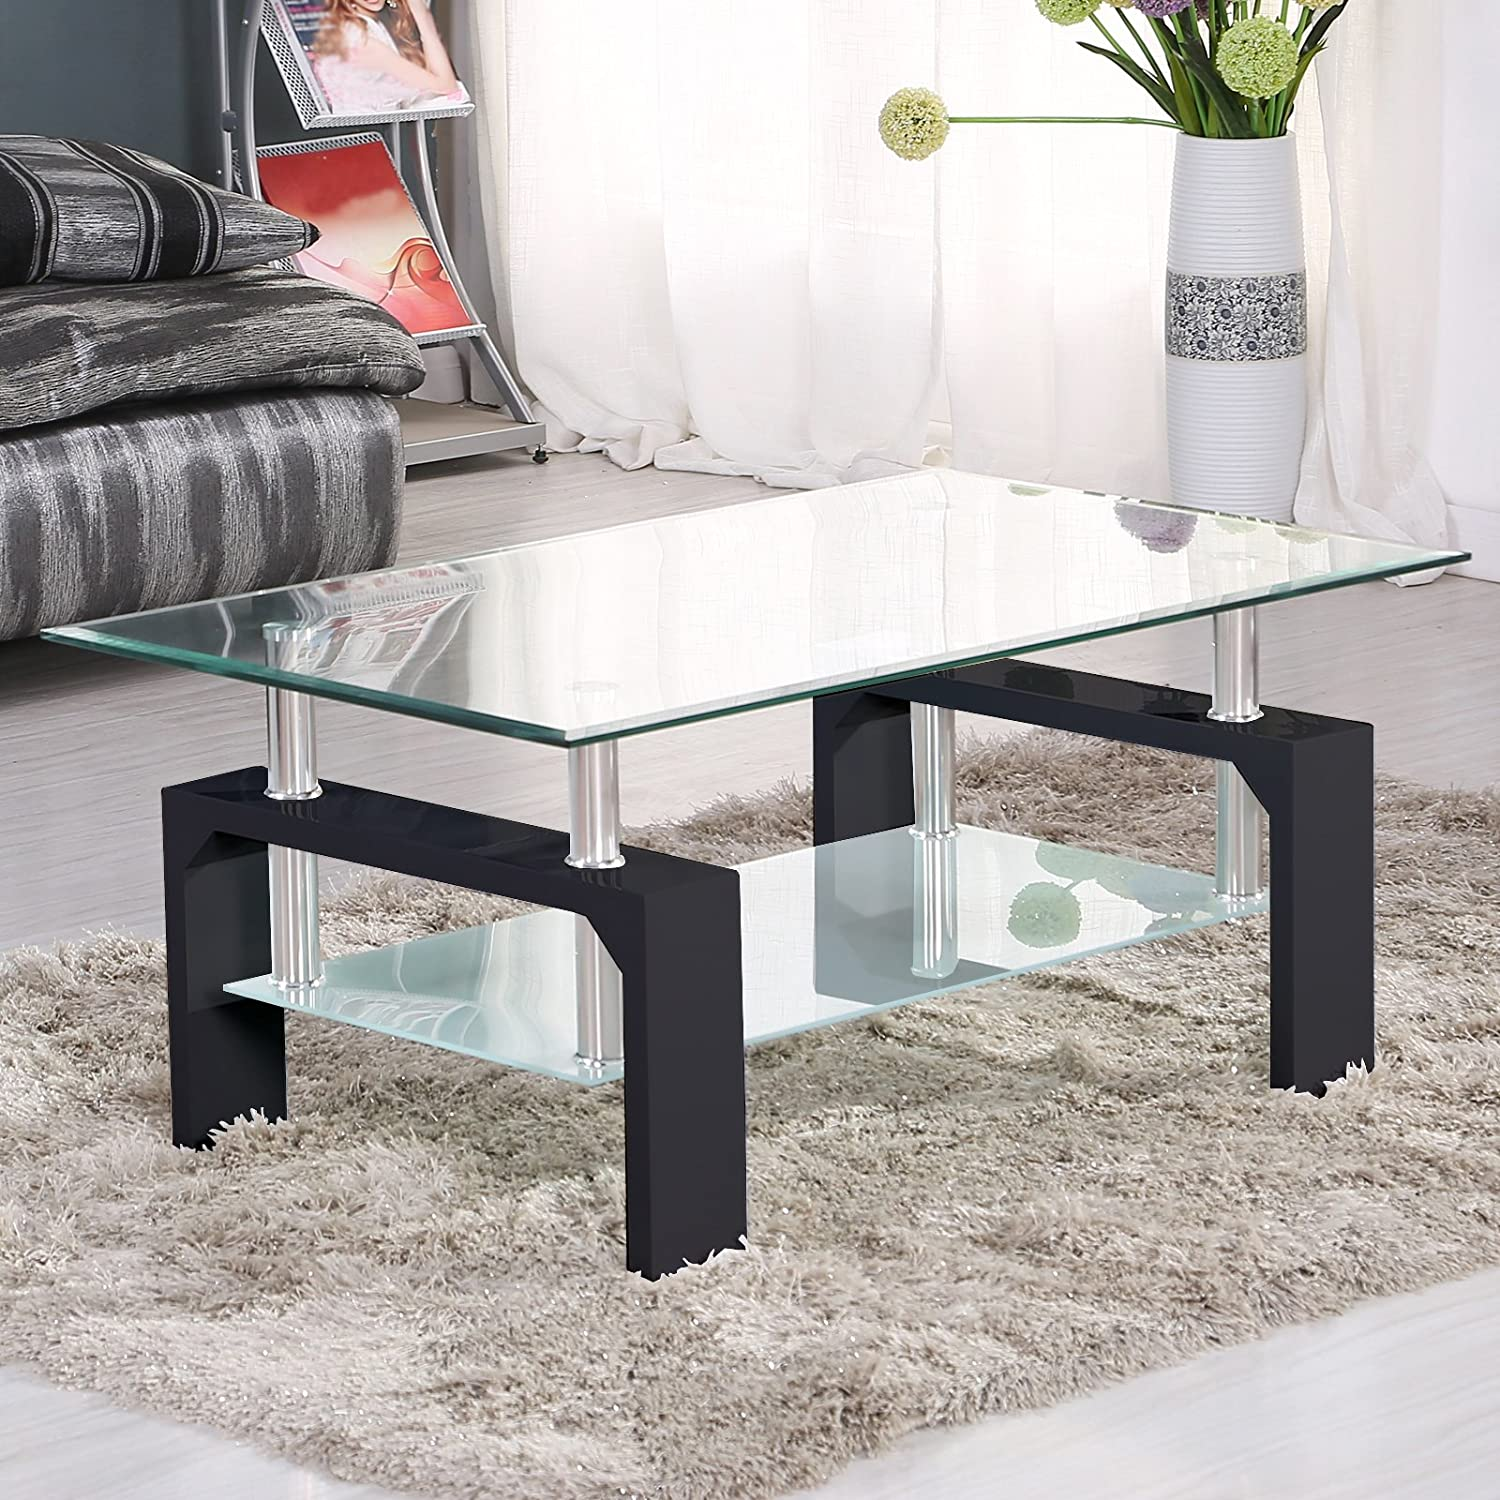 Attractive Amazon.com: SUNCOO Coffee Table Glass Top With Shelves Home Furniture Clear  Rectangle Black: Kitchen U0026 Dining